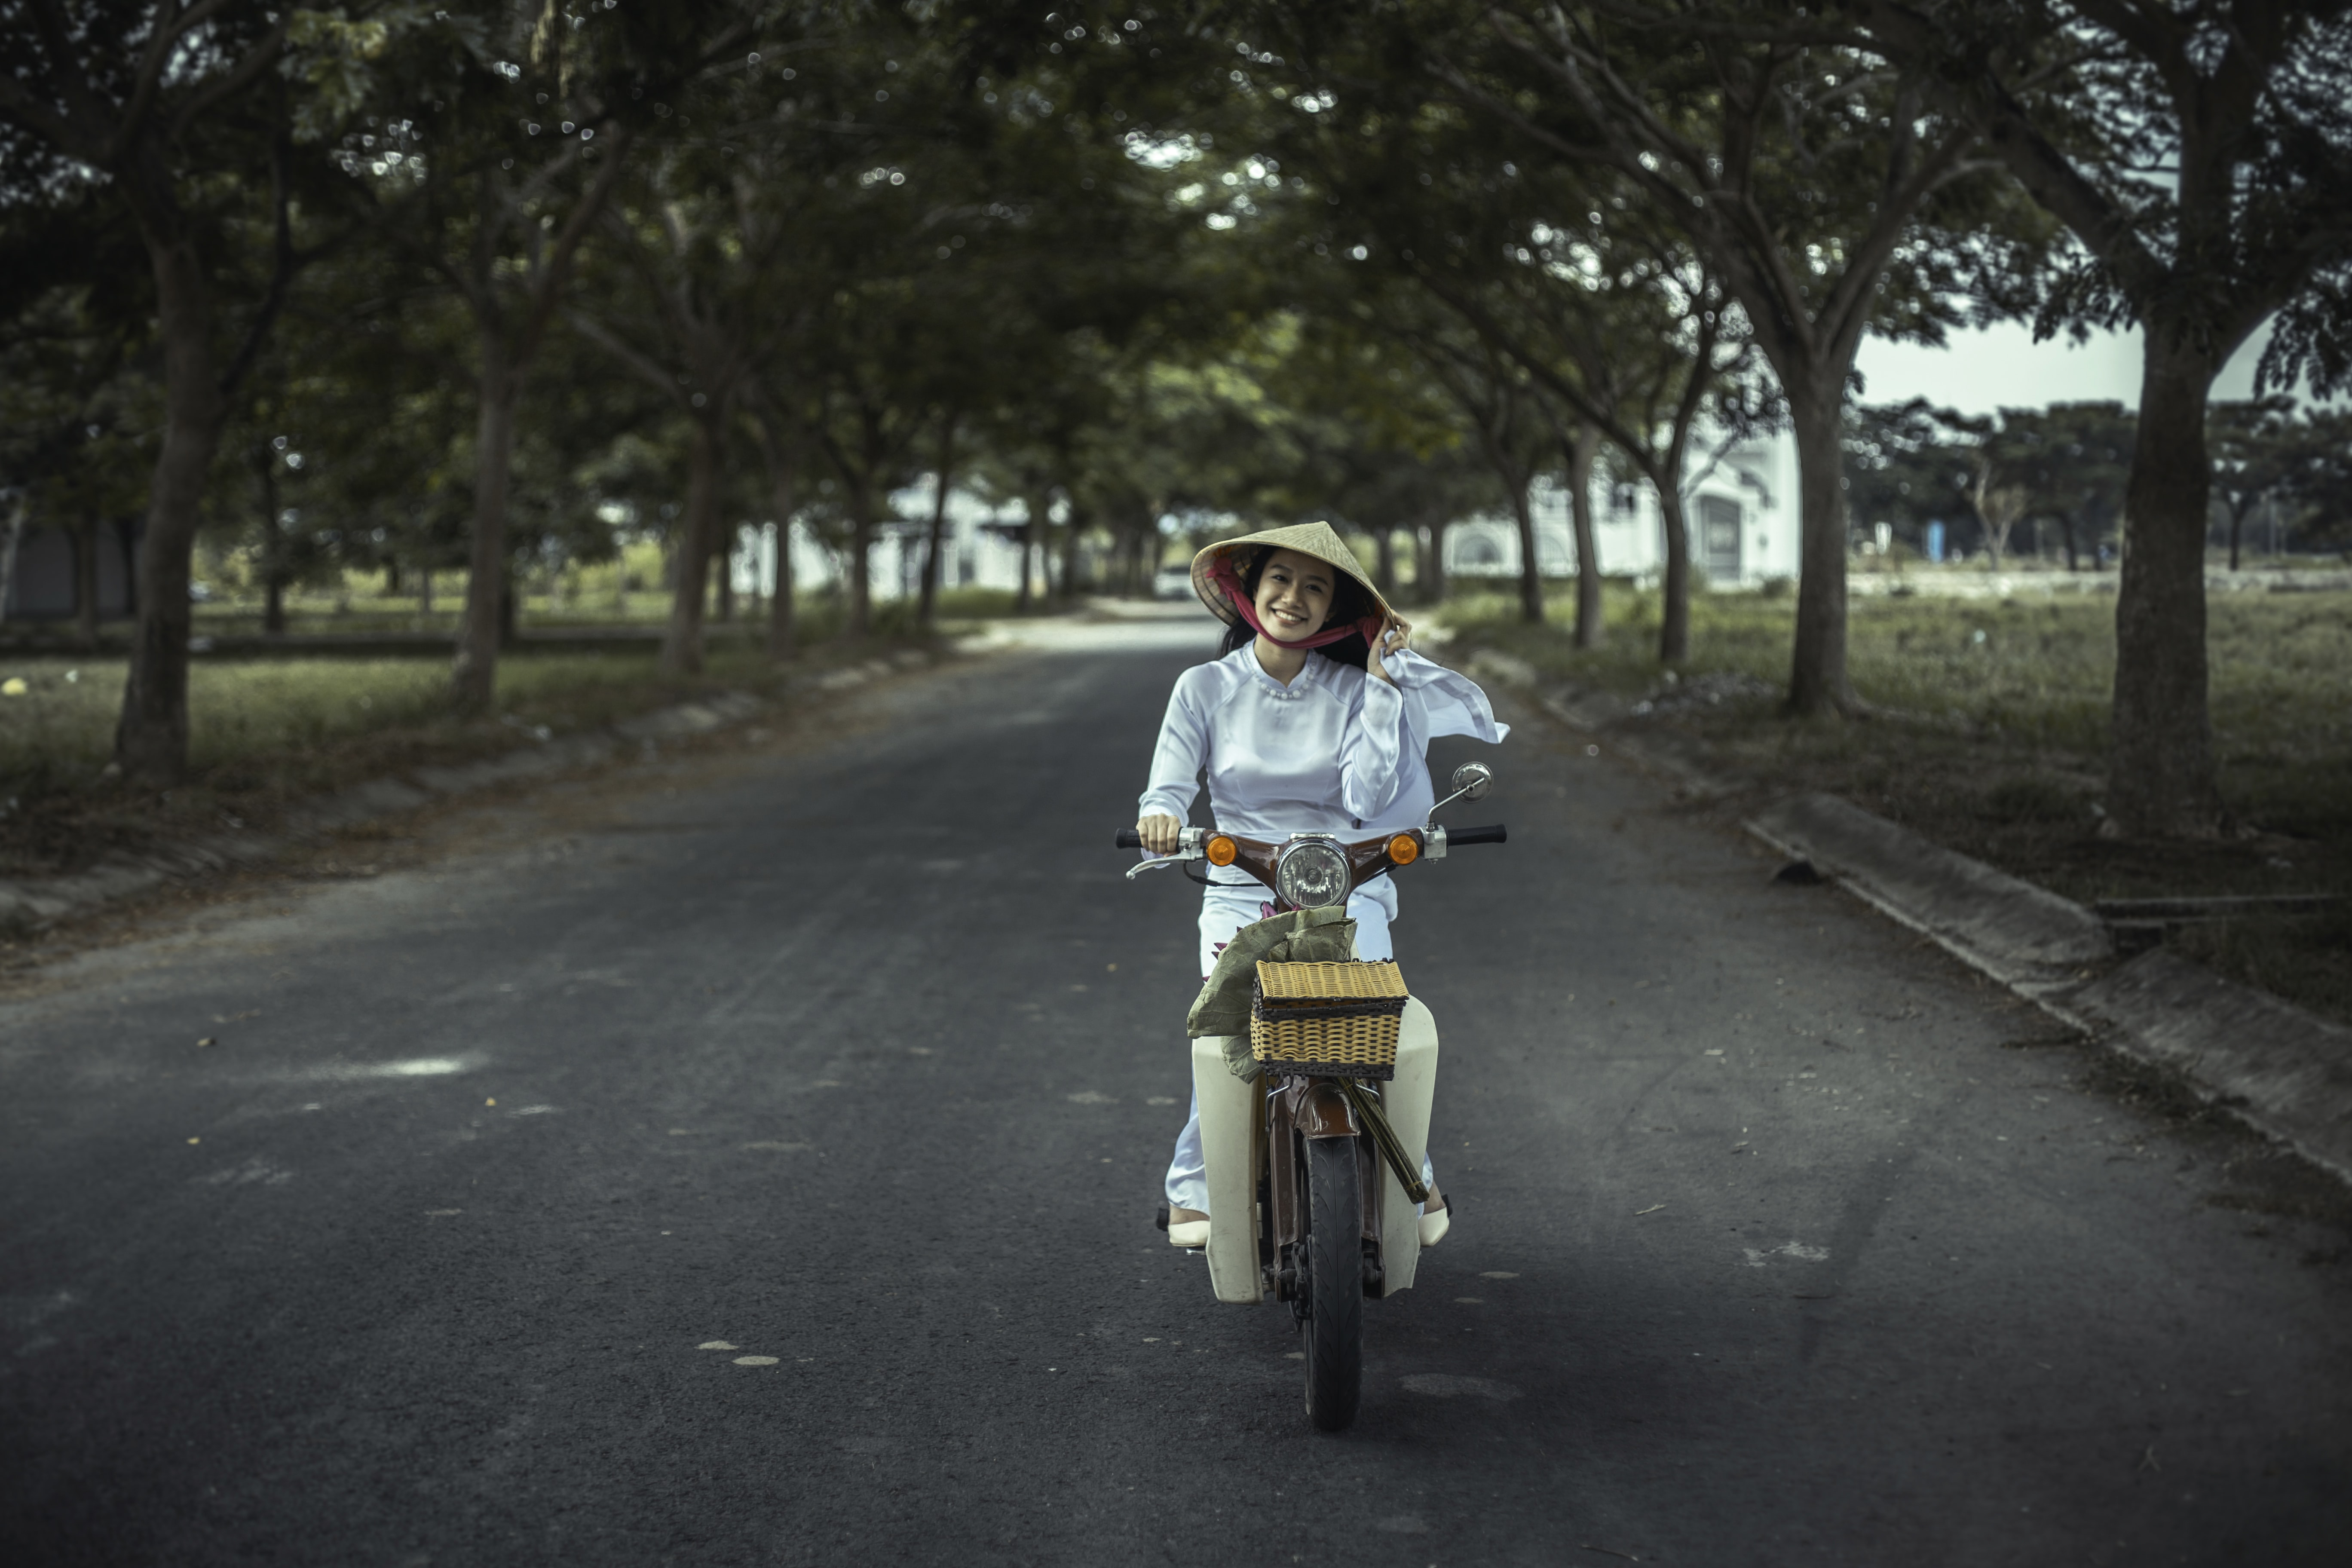 A smiling woman in a rice hat riding a vintage motorbike on a tree-lined road